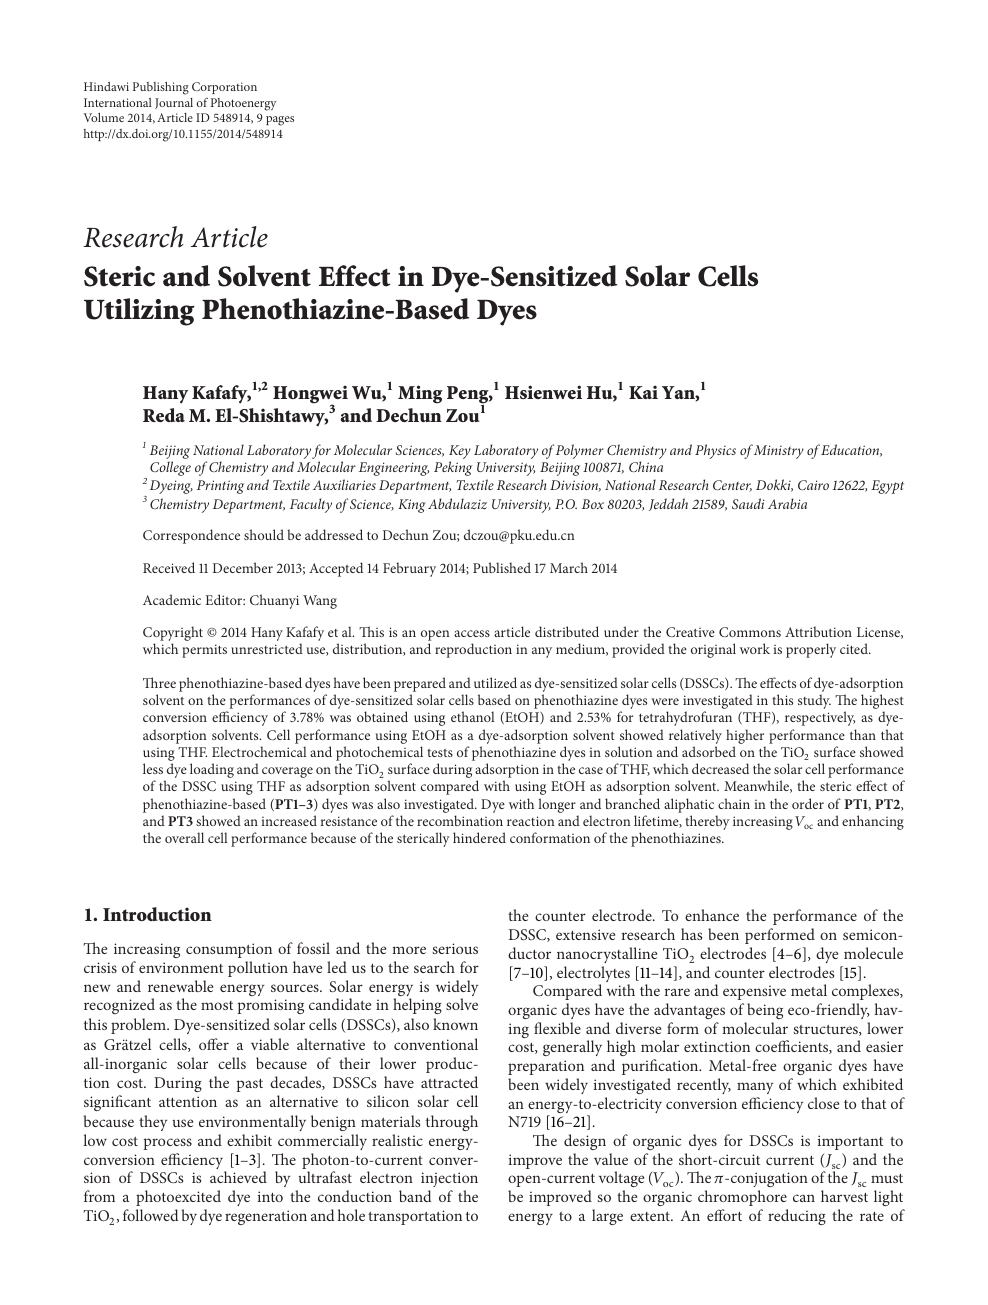 Steric and Solvent Effect in Dye-Sensitized Solar Cells